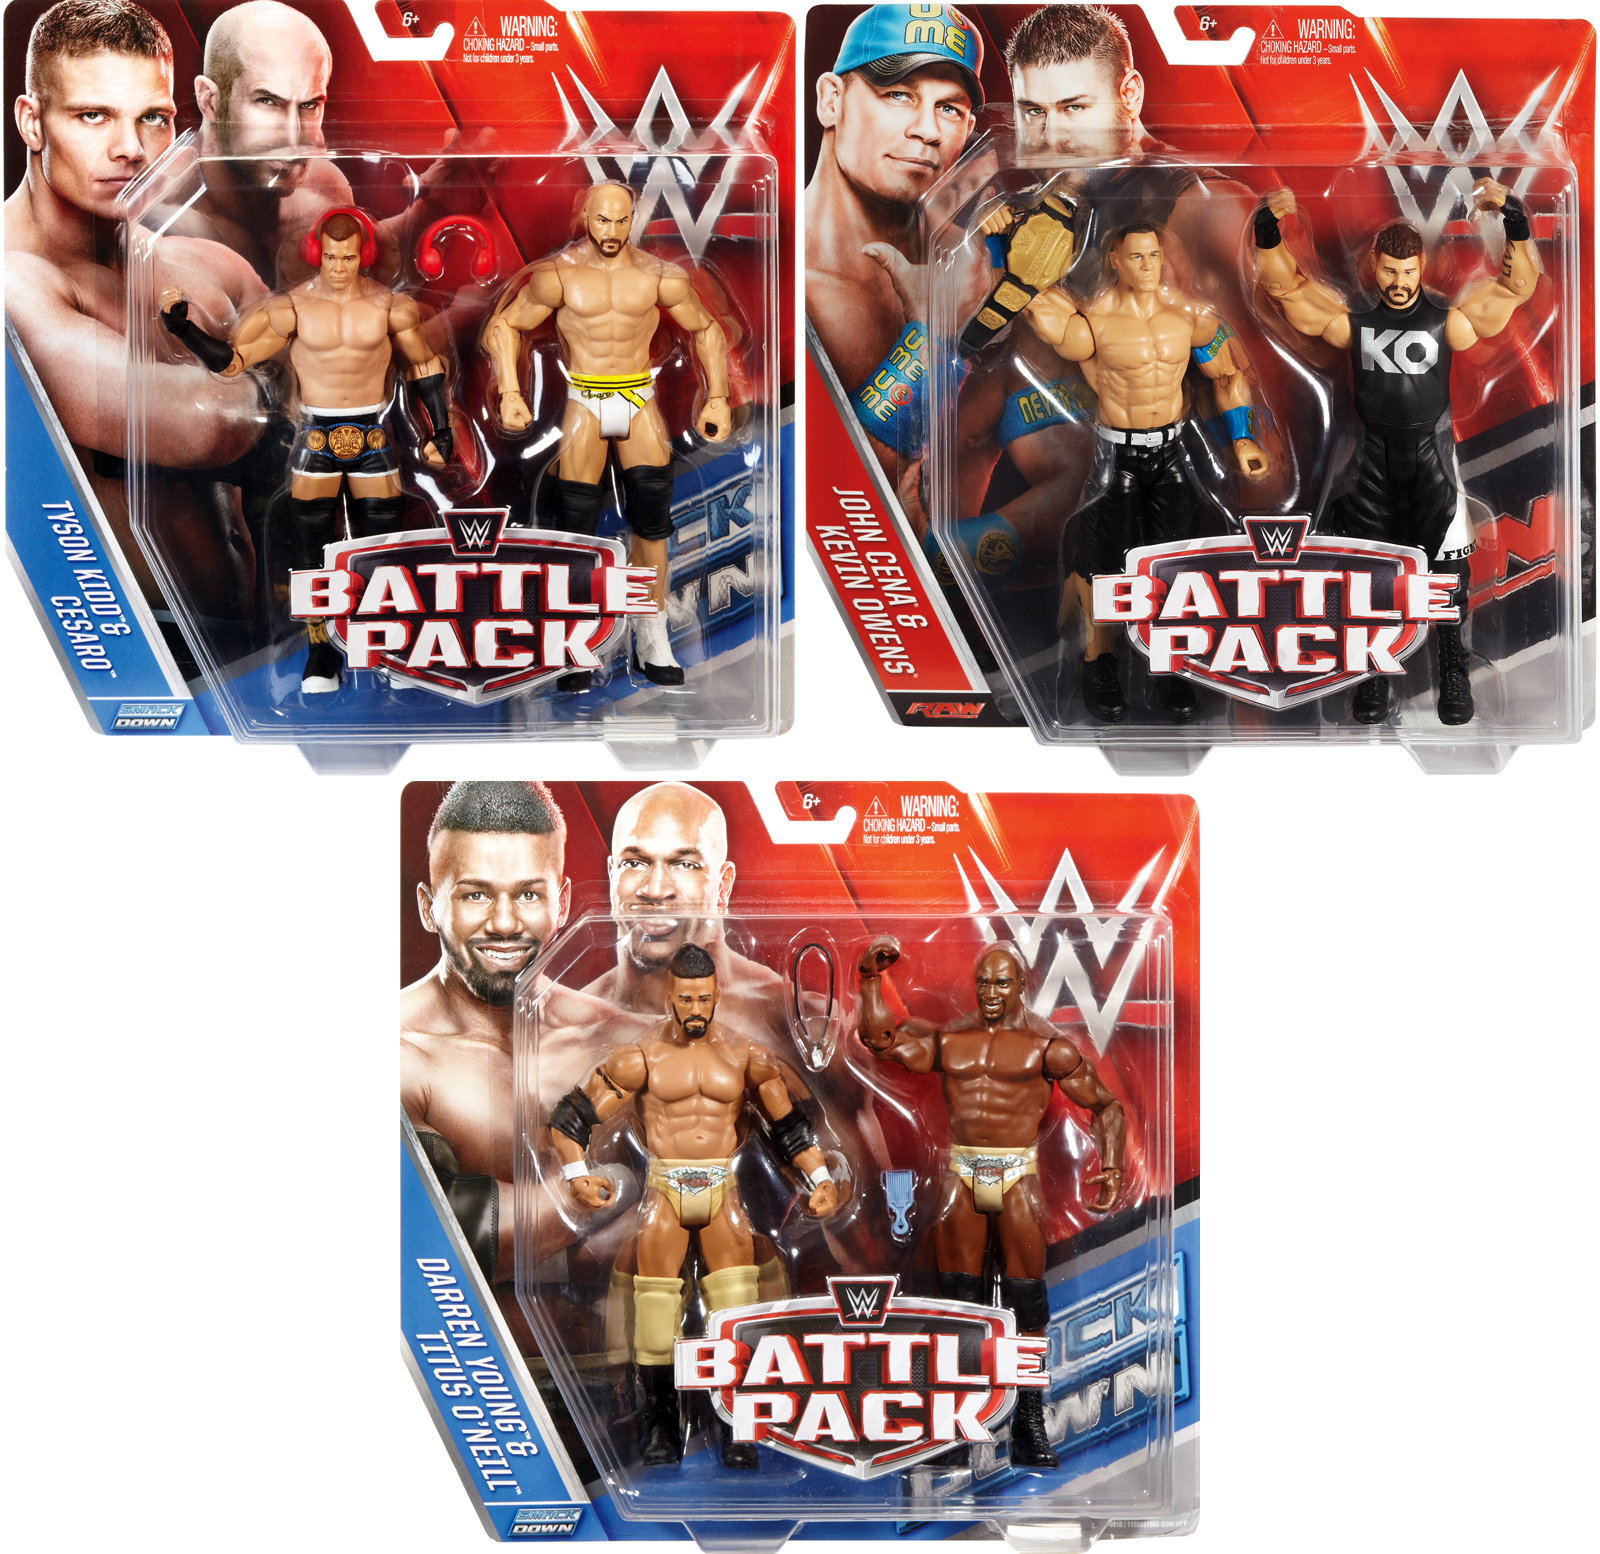 WWE Battle Packs 39 - Complete Set of 3 2-Packs WWE Toy Wrestling Action Figures